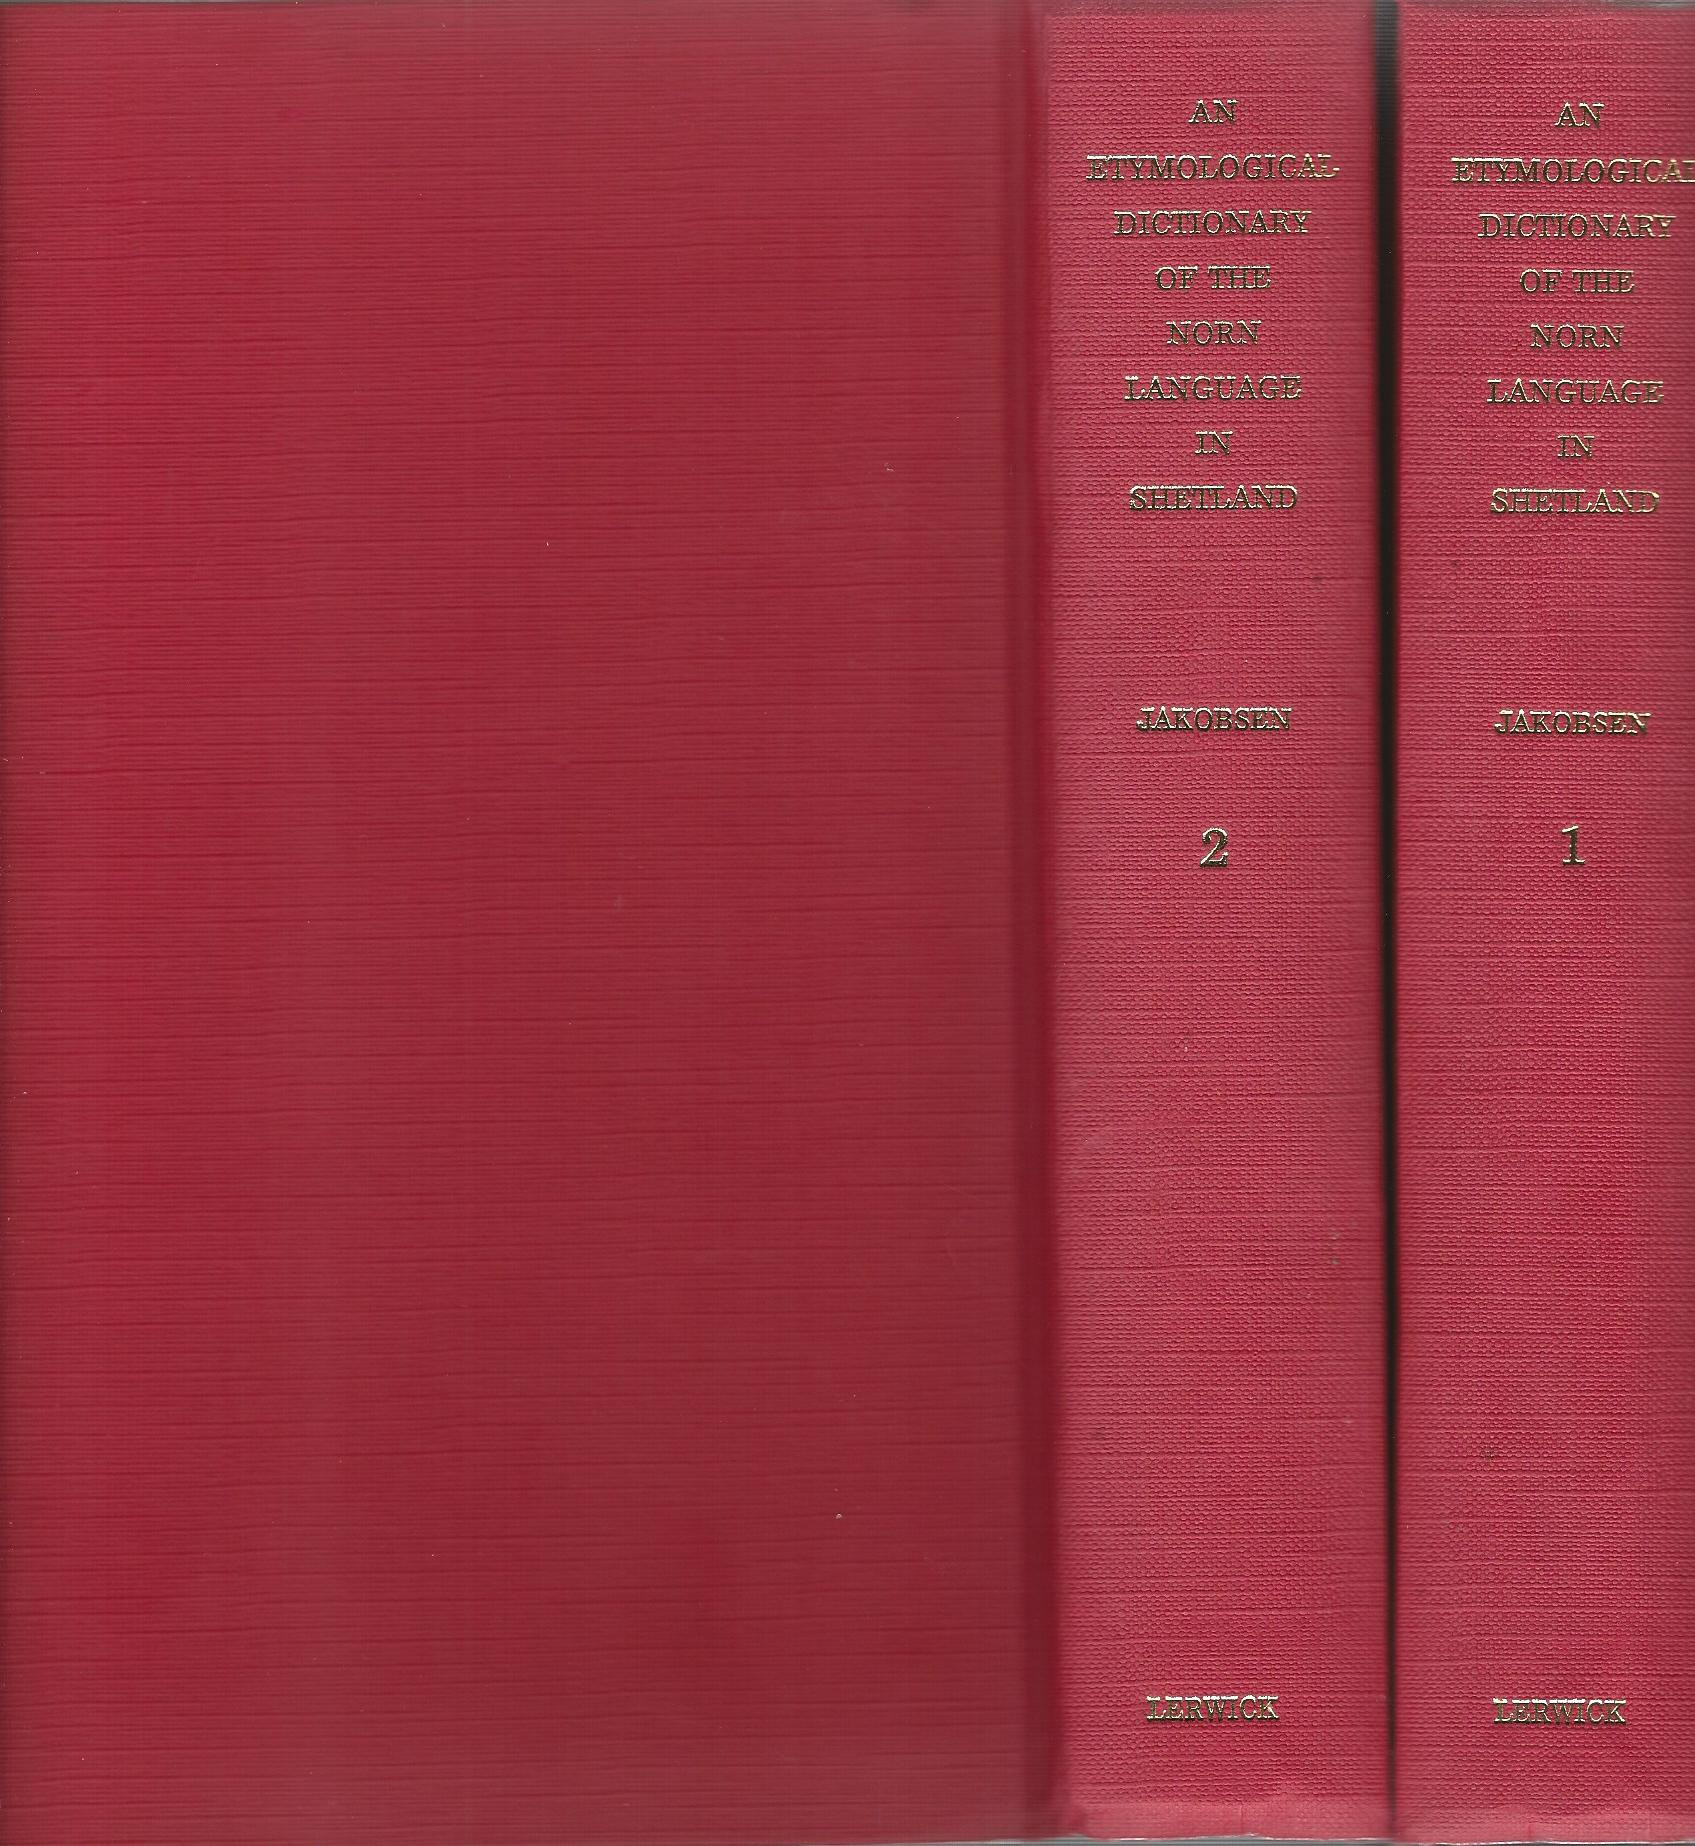 Image for Etymological Dictionary of the Norn Language in Shetland. 2 Volumes.